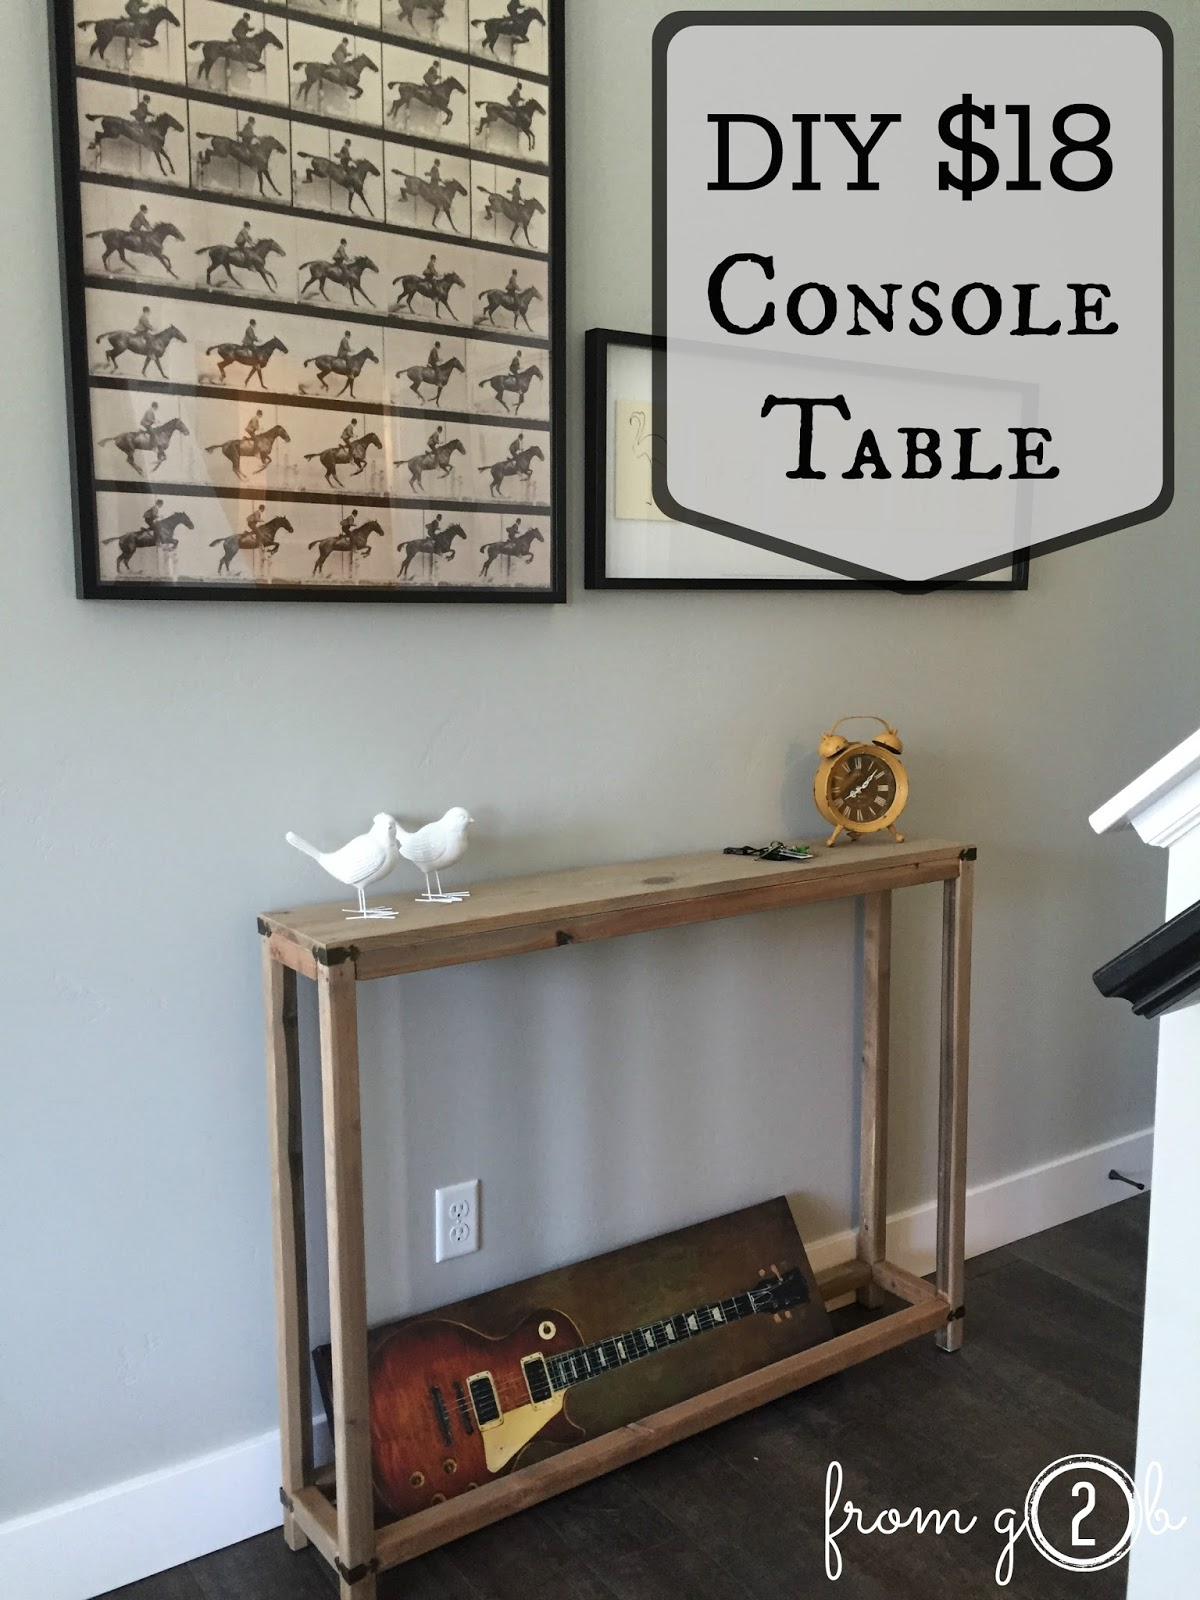 From gardners 2 bergers 18 diy console table 18 diy console table geotapseo Choice Image